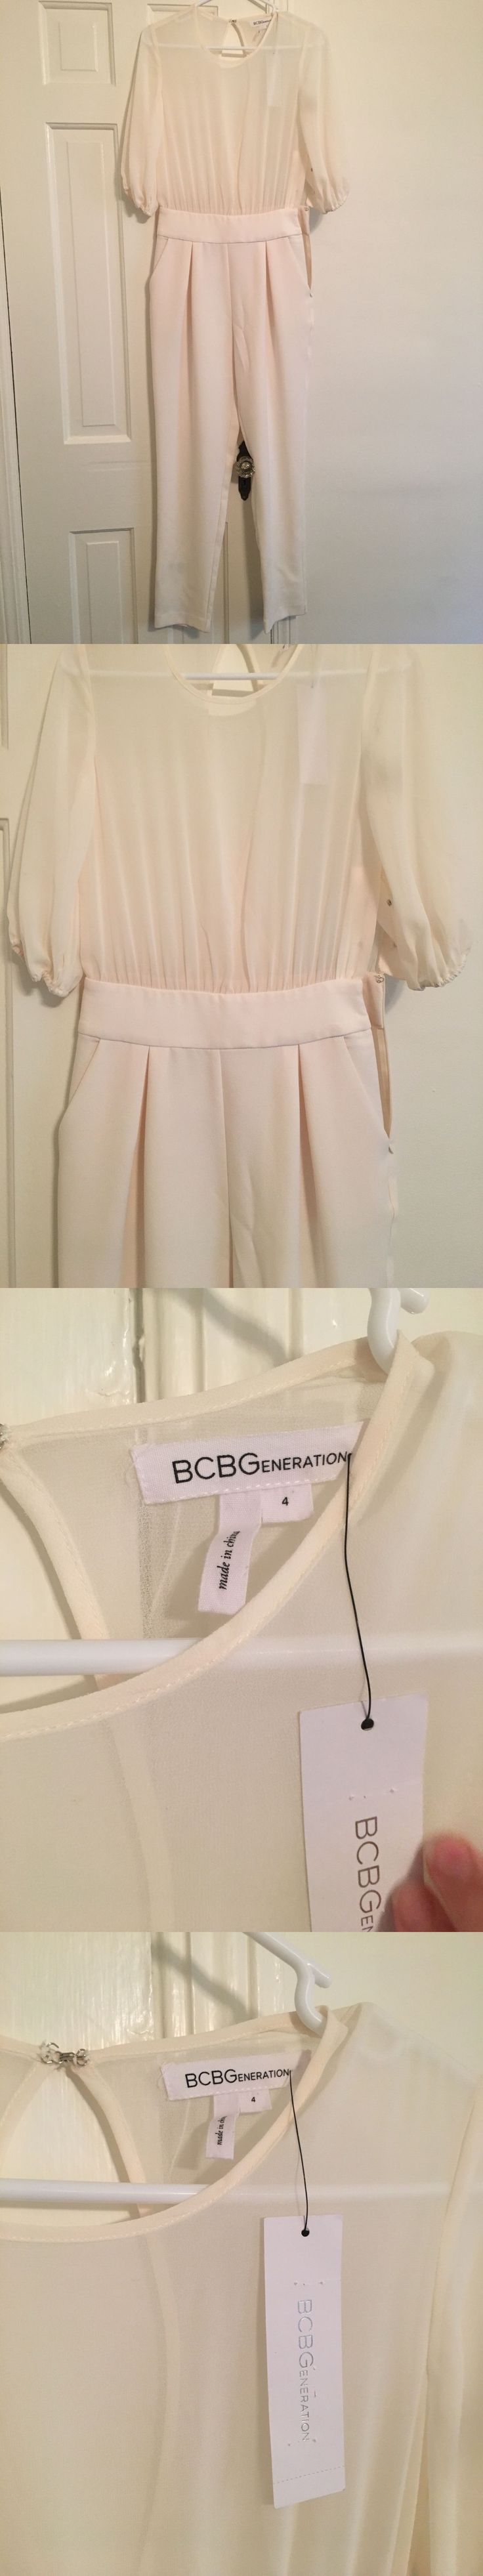 Jumpsuits and Rompers 3009: Bcbgeneration Women S White Jumpsuit Size 4 -> BUY IT NOW ONLY: $30 on eBay!